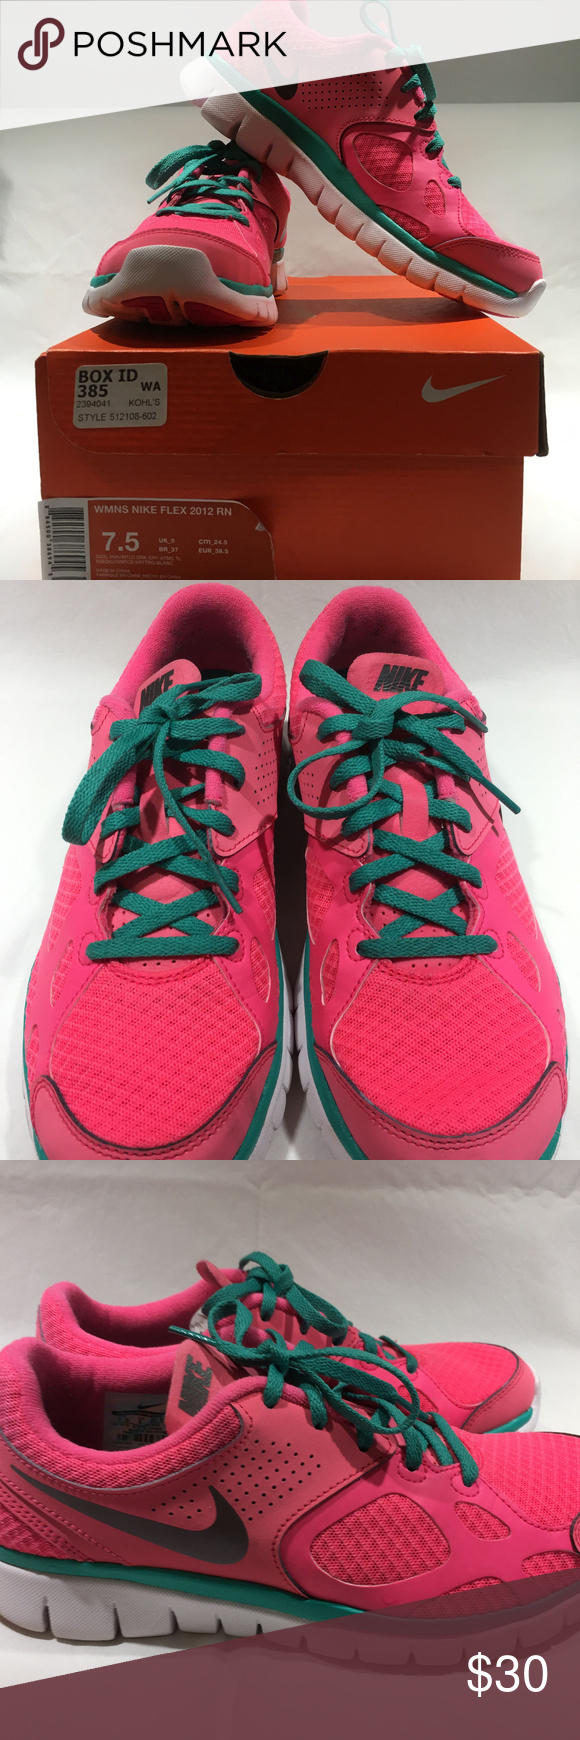 1d4903aee540 Nike Flex Experience RN 2012 Sneakers Size 7.5 Nike Flex Experience RN 2012  Sneakers Size 7.5